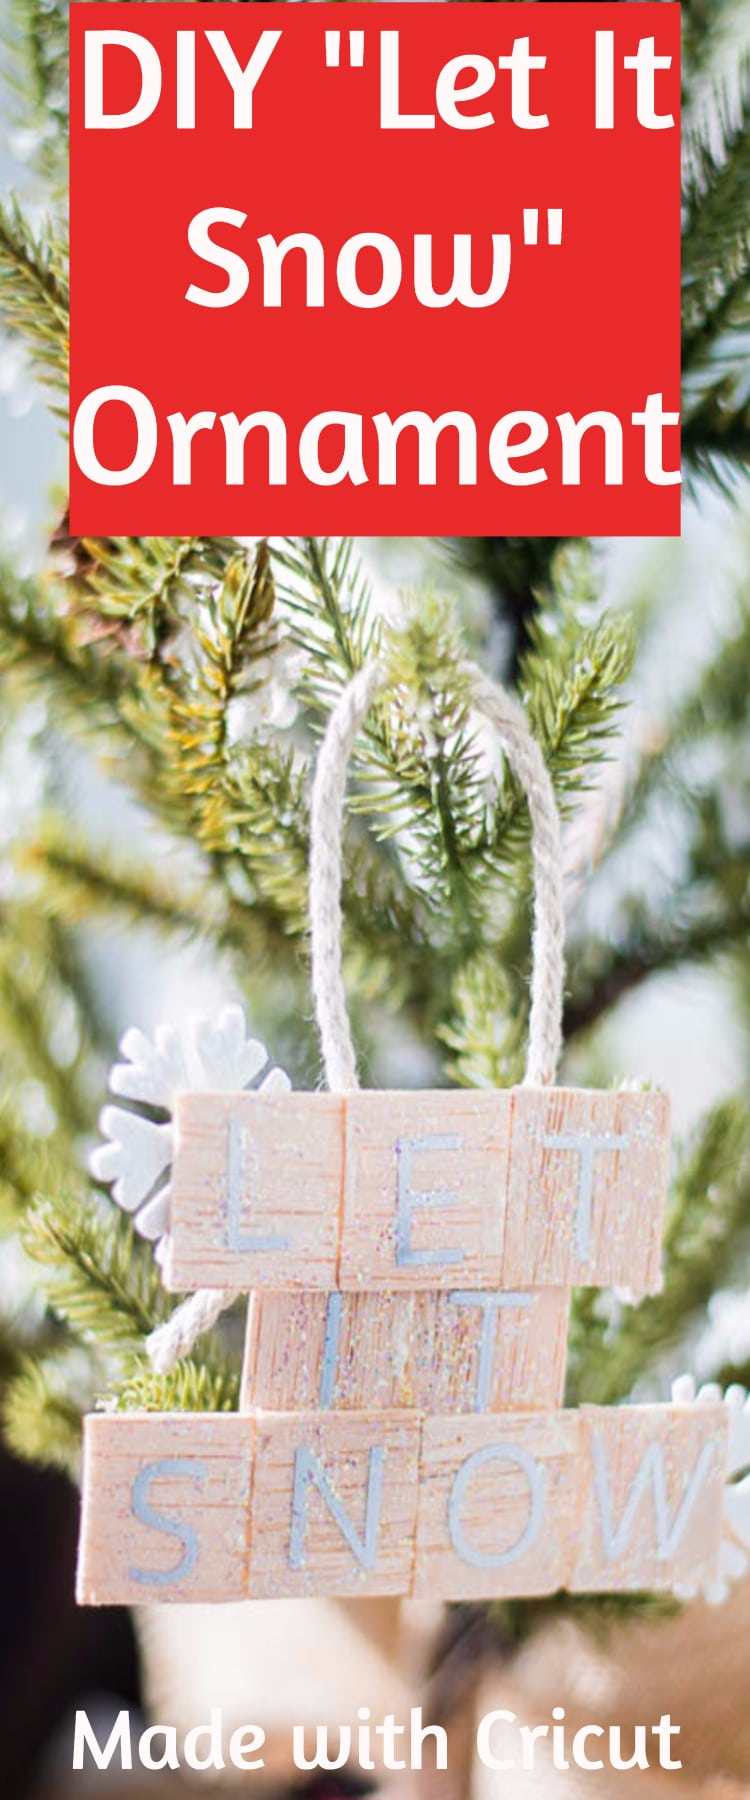 Let it snow ornament / DIY Wood Ornament / Cricut Ornaments / Cricut Crafts / Cricut Christmas / #Cricut #cricutexploreair #cricutmaker #Cricutproject via @clarkscondensed